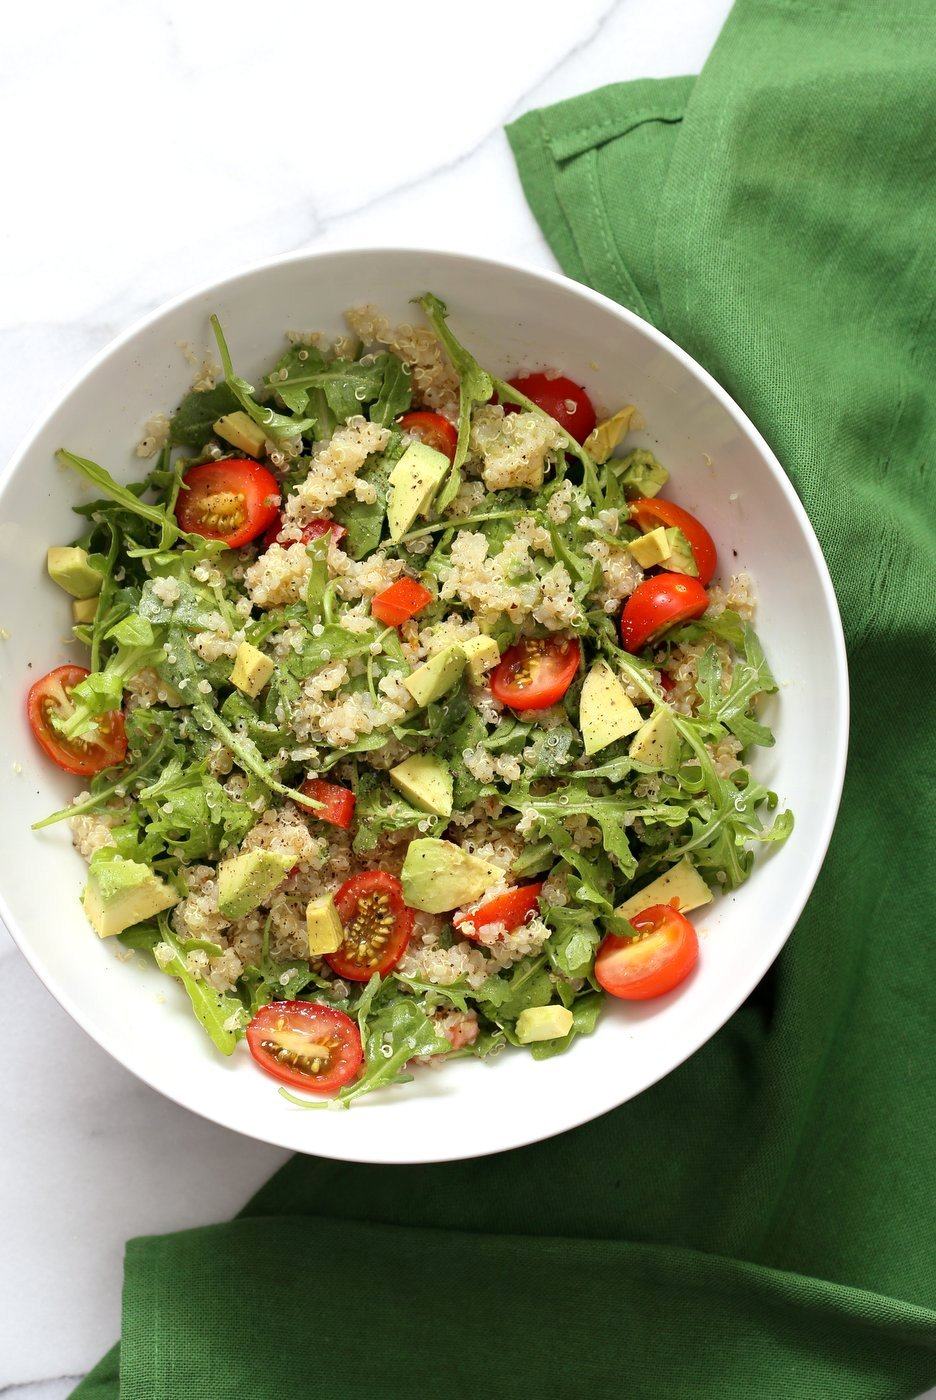 Mediterranean Quinoa Salad with Arugula, Avocado and Lemon Oregano Olive oil dressing. The Mediterranean Lemon Oregano Dressing brightens up this Summery Quinoa Salad. Perfect to make ahead and serve at Picnics. Vegan Gluten-free, Nut-free Soy-free Recipe | VeganRicha.com